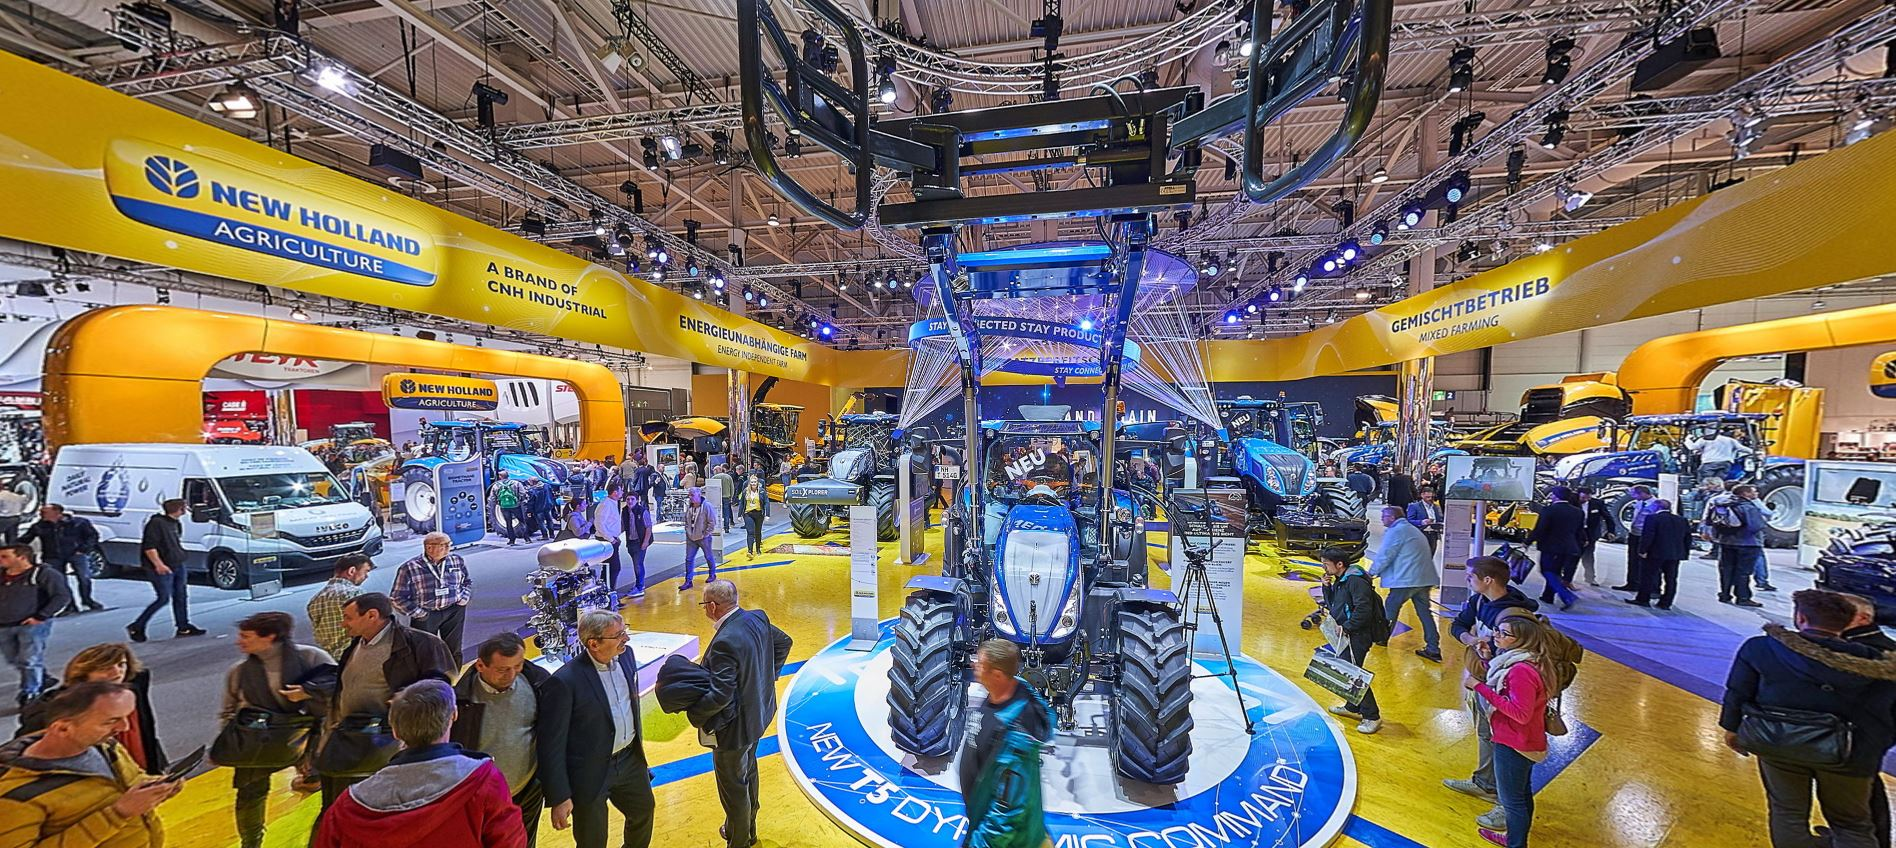 Facts Figures Agritechnica